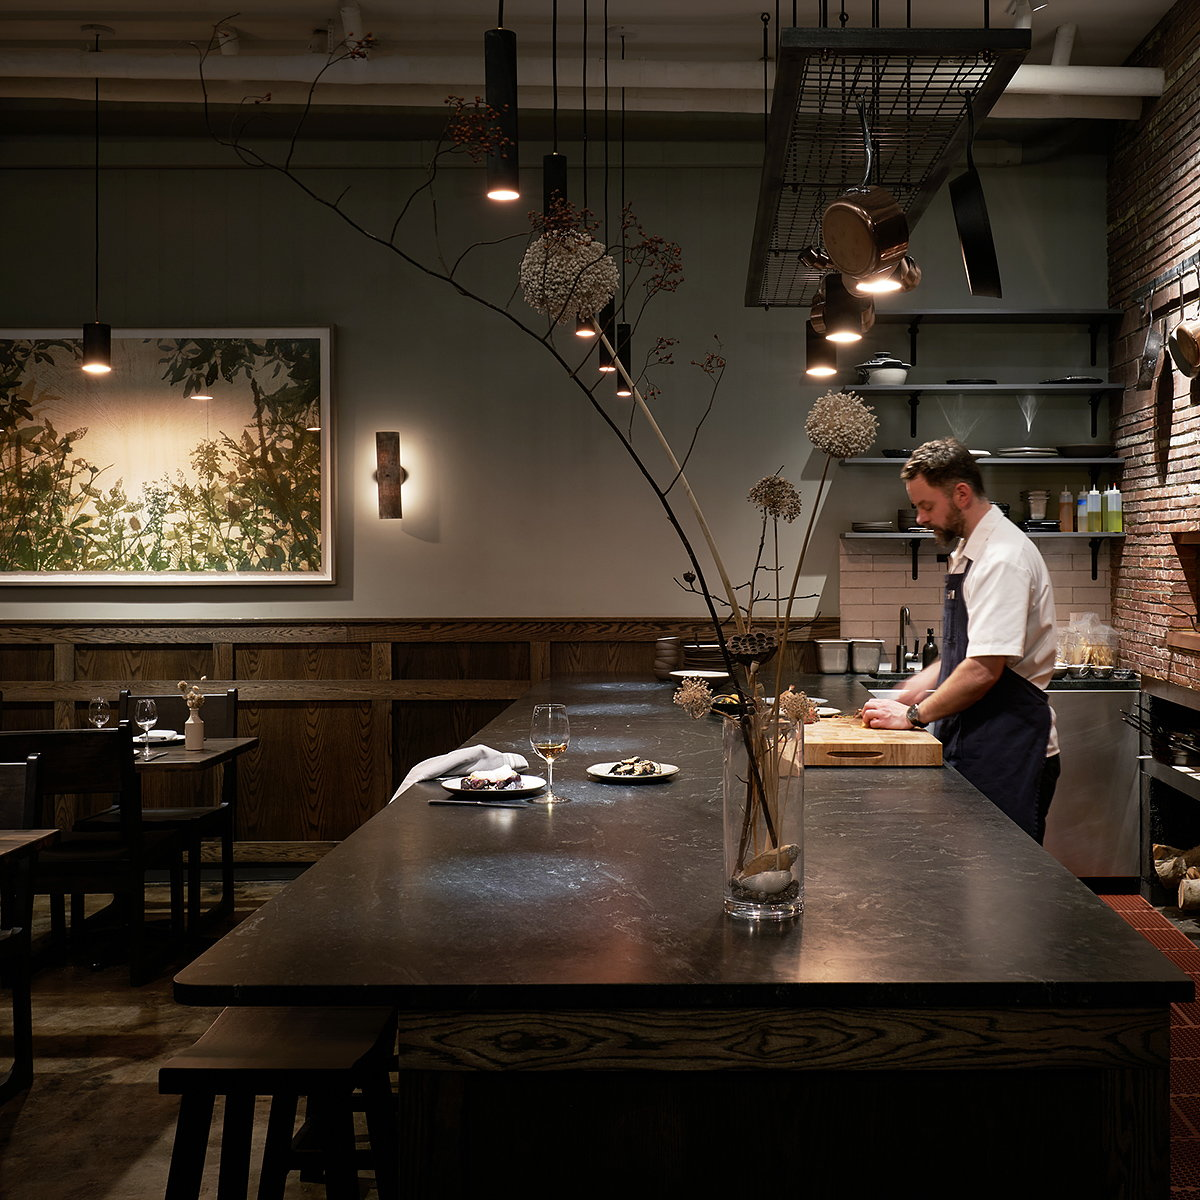 Mutuus Studio Designs Samara, a New Restaurant in Seattle